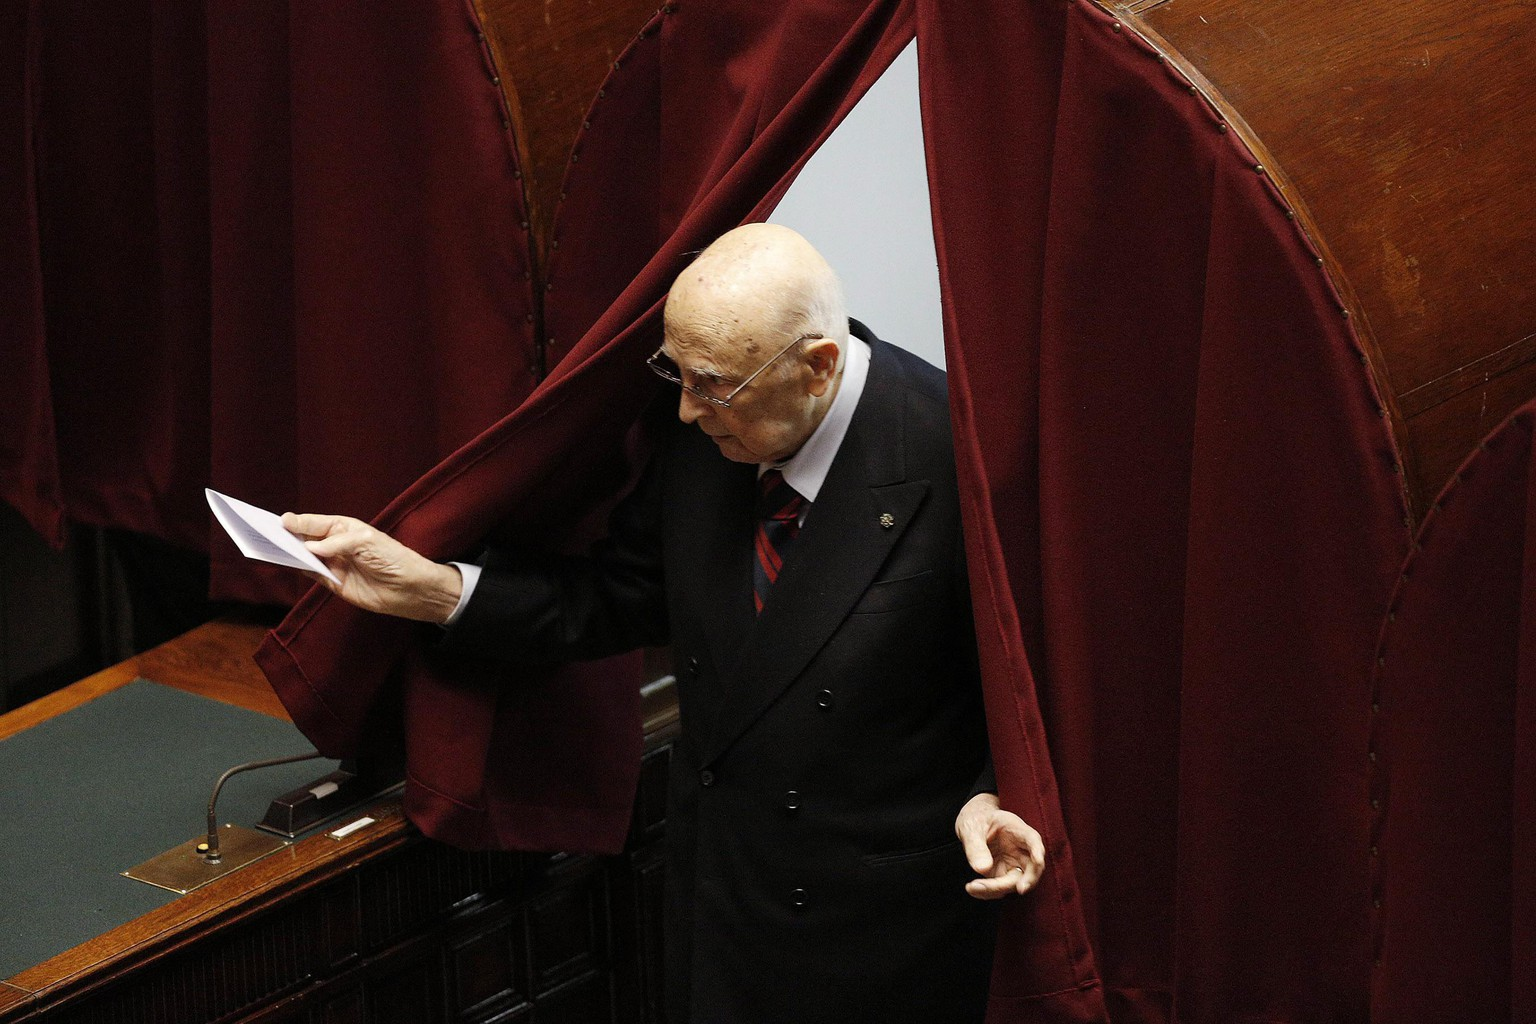 epa04596564 Former Italian President Giorgio Napolitano is about to cast his ballot during the fourth round of voting for a new Italian President, in Rome, Italy, 31 January 2015. Italian lawmakers convened 31 January for the fourth time in three days for what was expected to be a decisive ballot to elect Constitutional Court Judge Sergio Mattarella as the new head of state. Napolitano had resigned some six months before turning 90, citing the strains of old age. Having been granted life-long Senate membership, like all former presidents, he is taking part in the process to pick his successor.  EPA/GIUSEPPE LAMI